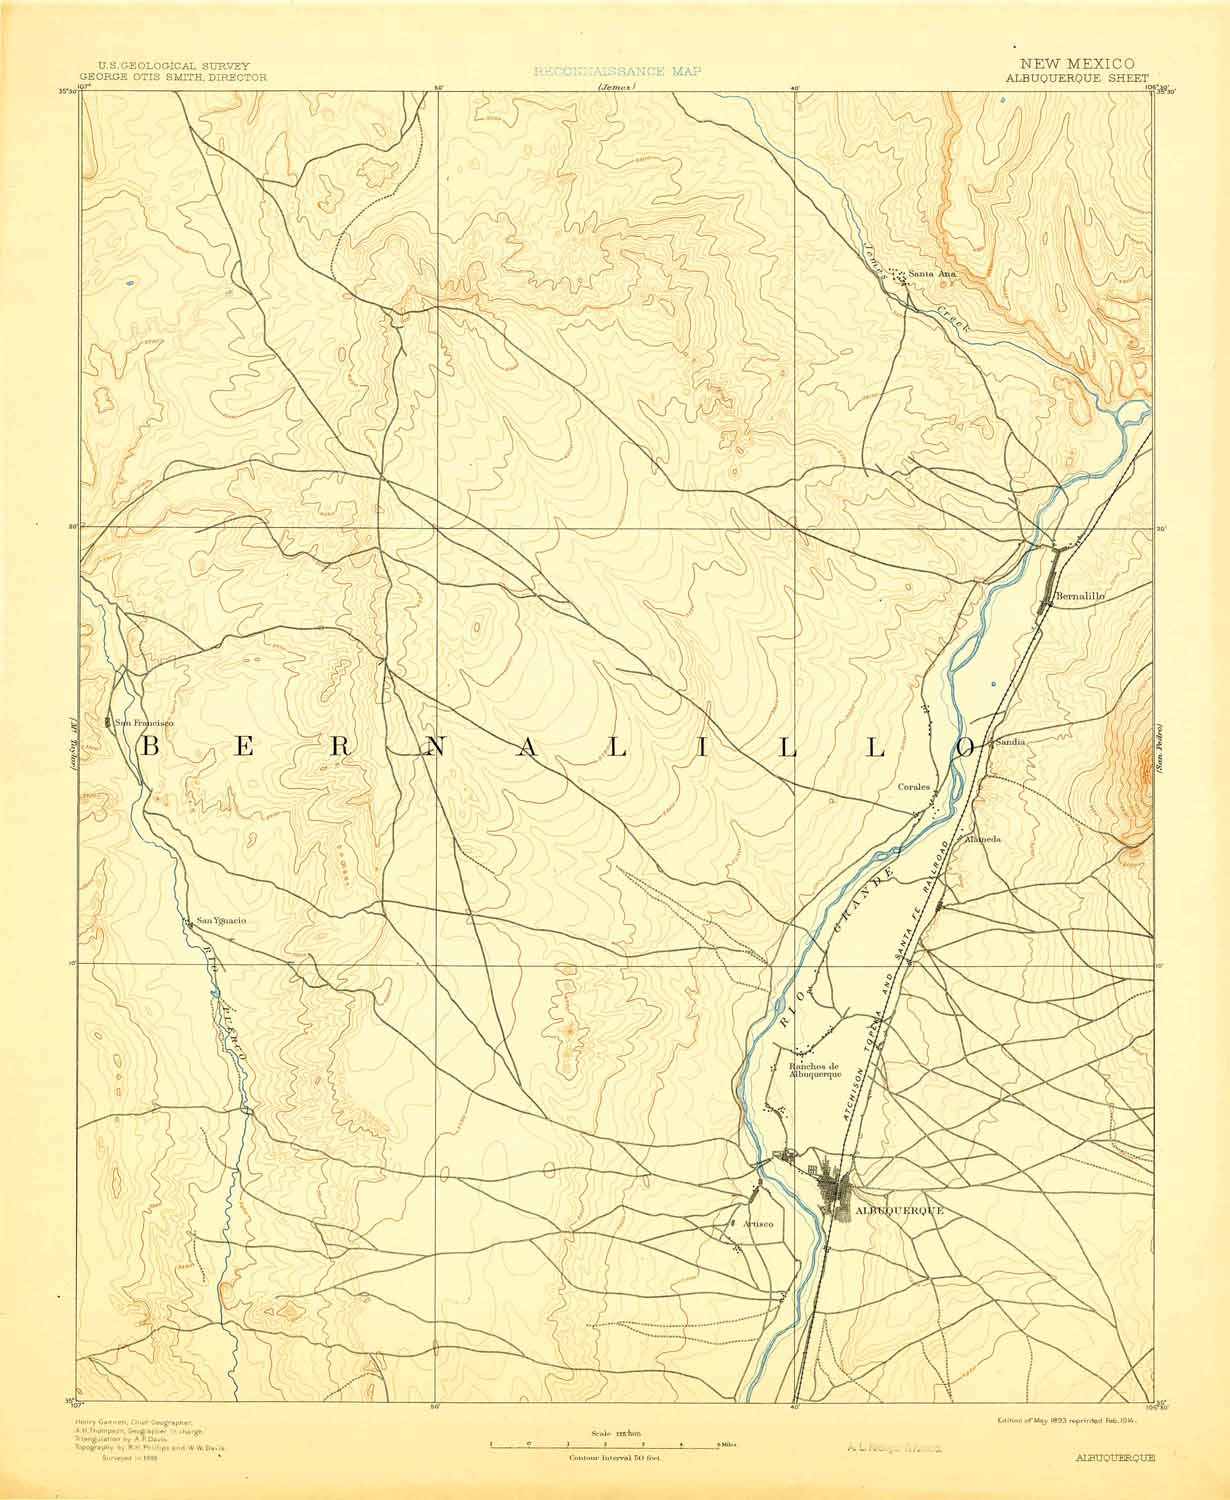 Collection C 007: USGS topographic map of Albuquerque, N.M., at the ...